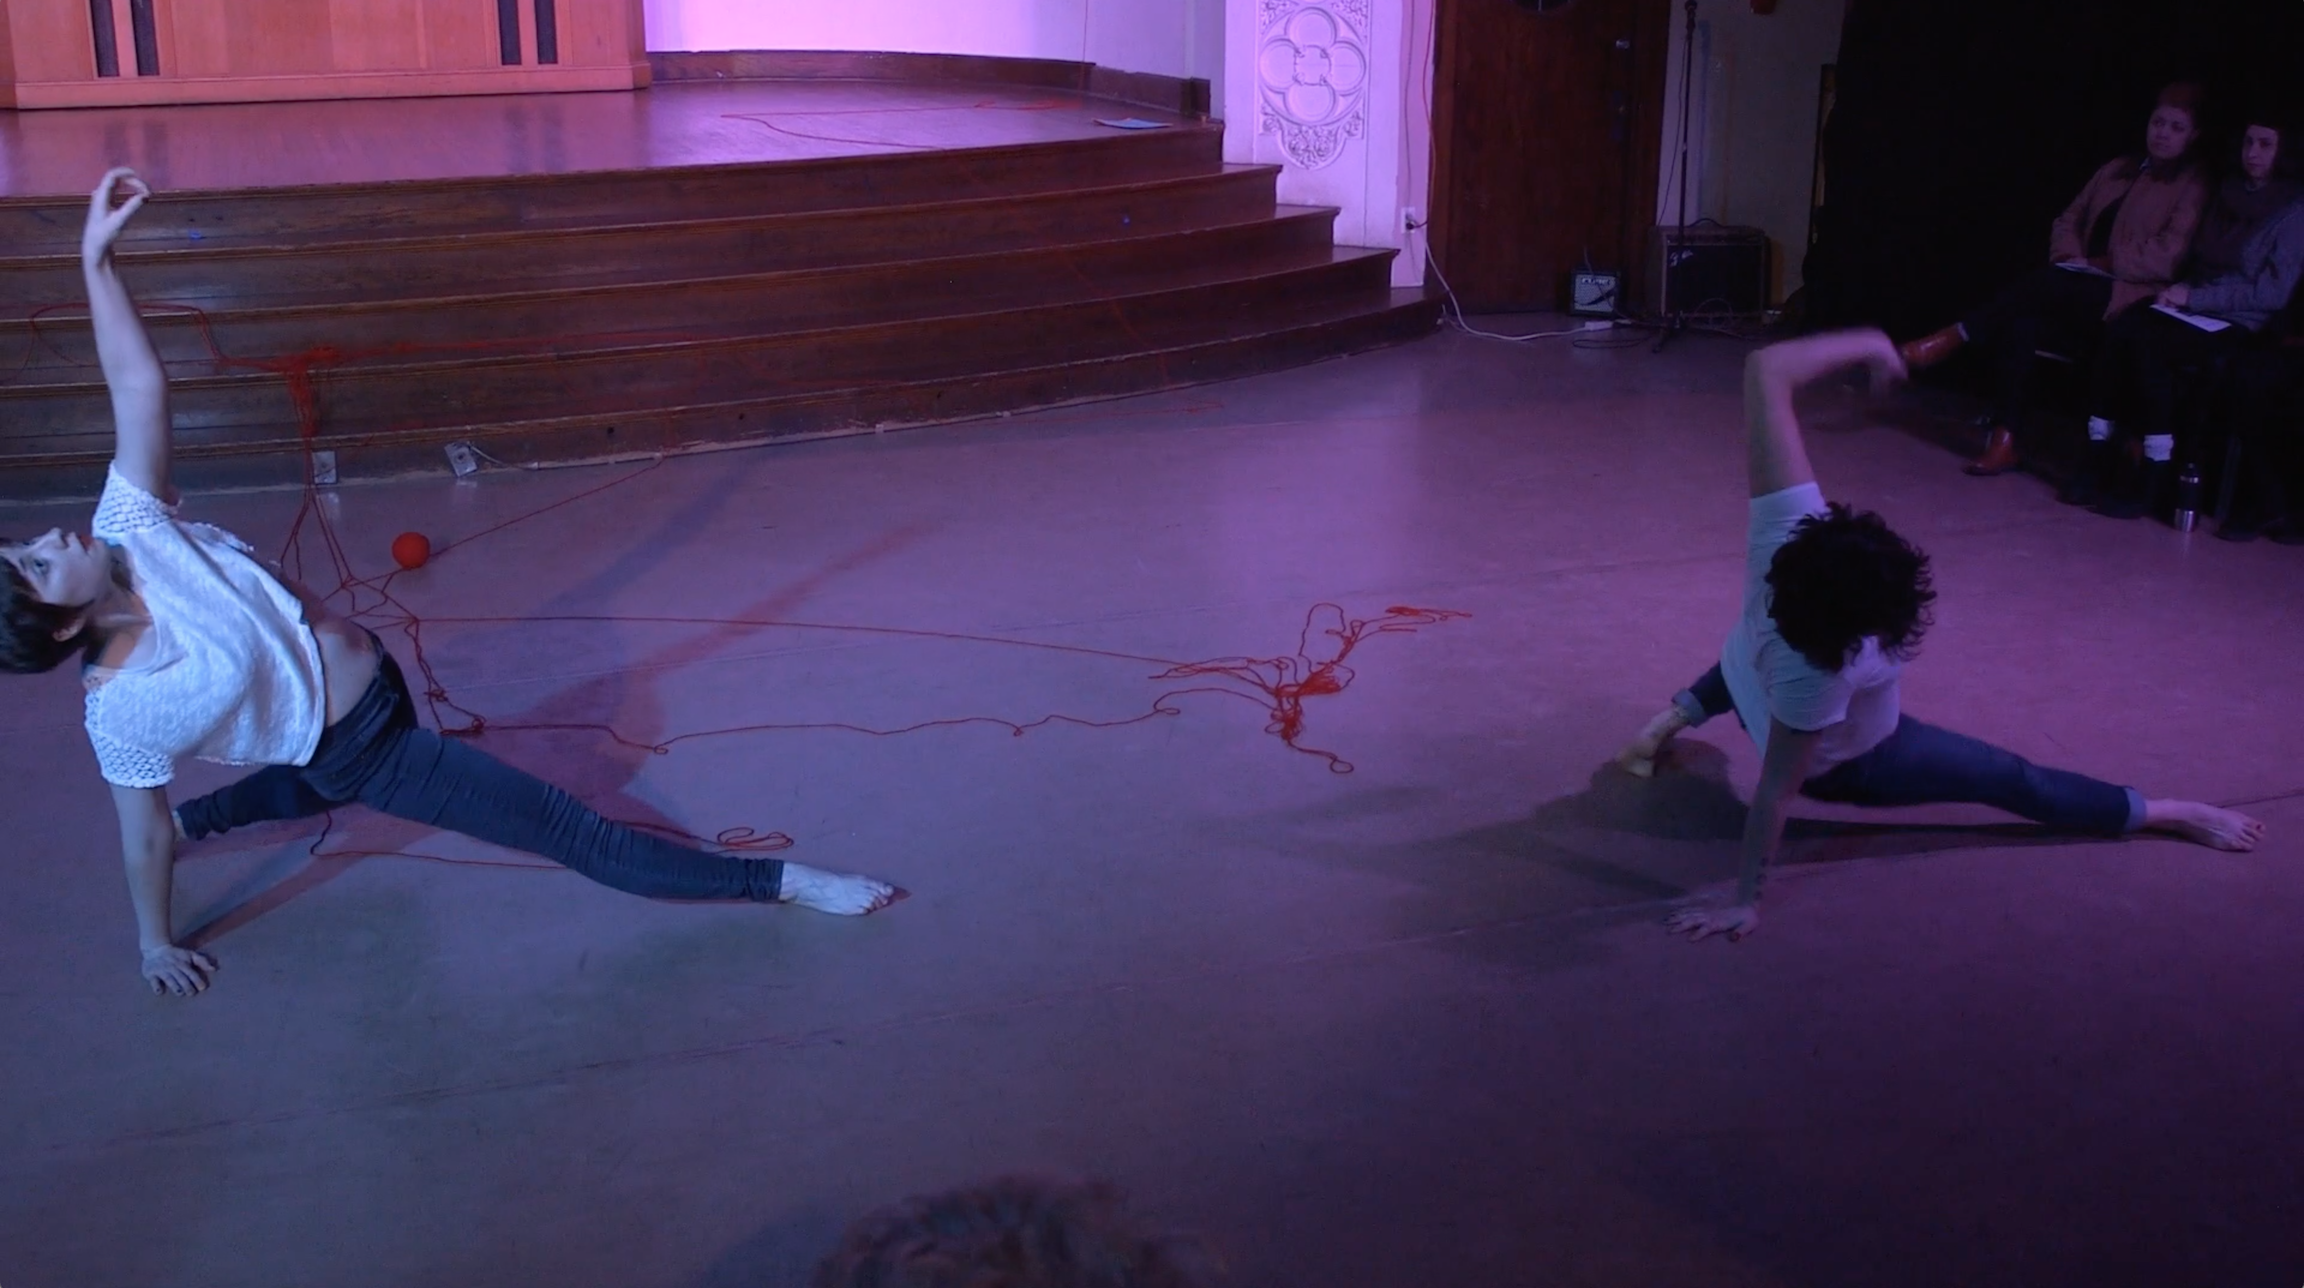 "Image: Maggie Robinson and Allison Sokolowski performing in ""I Am."" The dancers suspend themselves off the floor in variations of the same pose, as if pausing while sliding into a split. Allison reaches and looks up at the ceiling and Maggie reaches and looks toward the audience. Around them on the floor are strands of red yard. The lighting is dim and cool, with purple highlights. Audience members are slightly visible in the foreground and background. Still from a video by John Borowski."